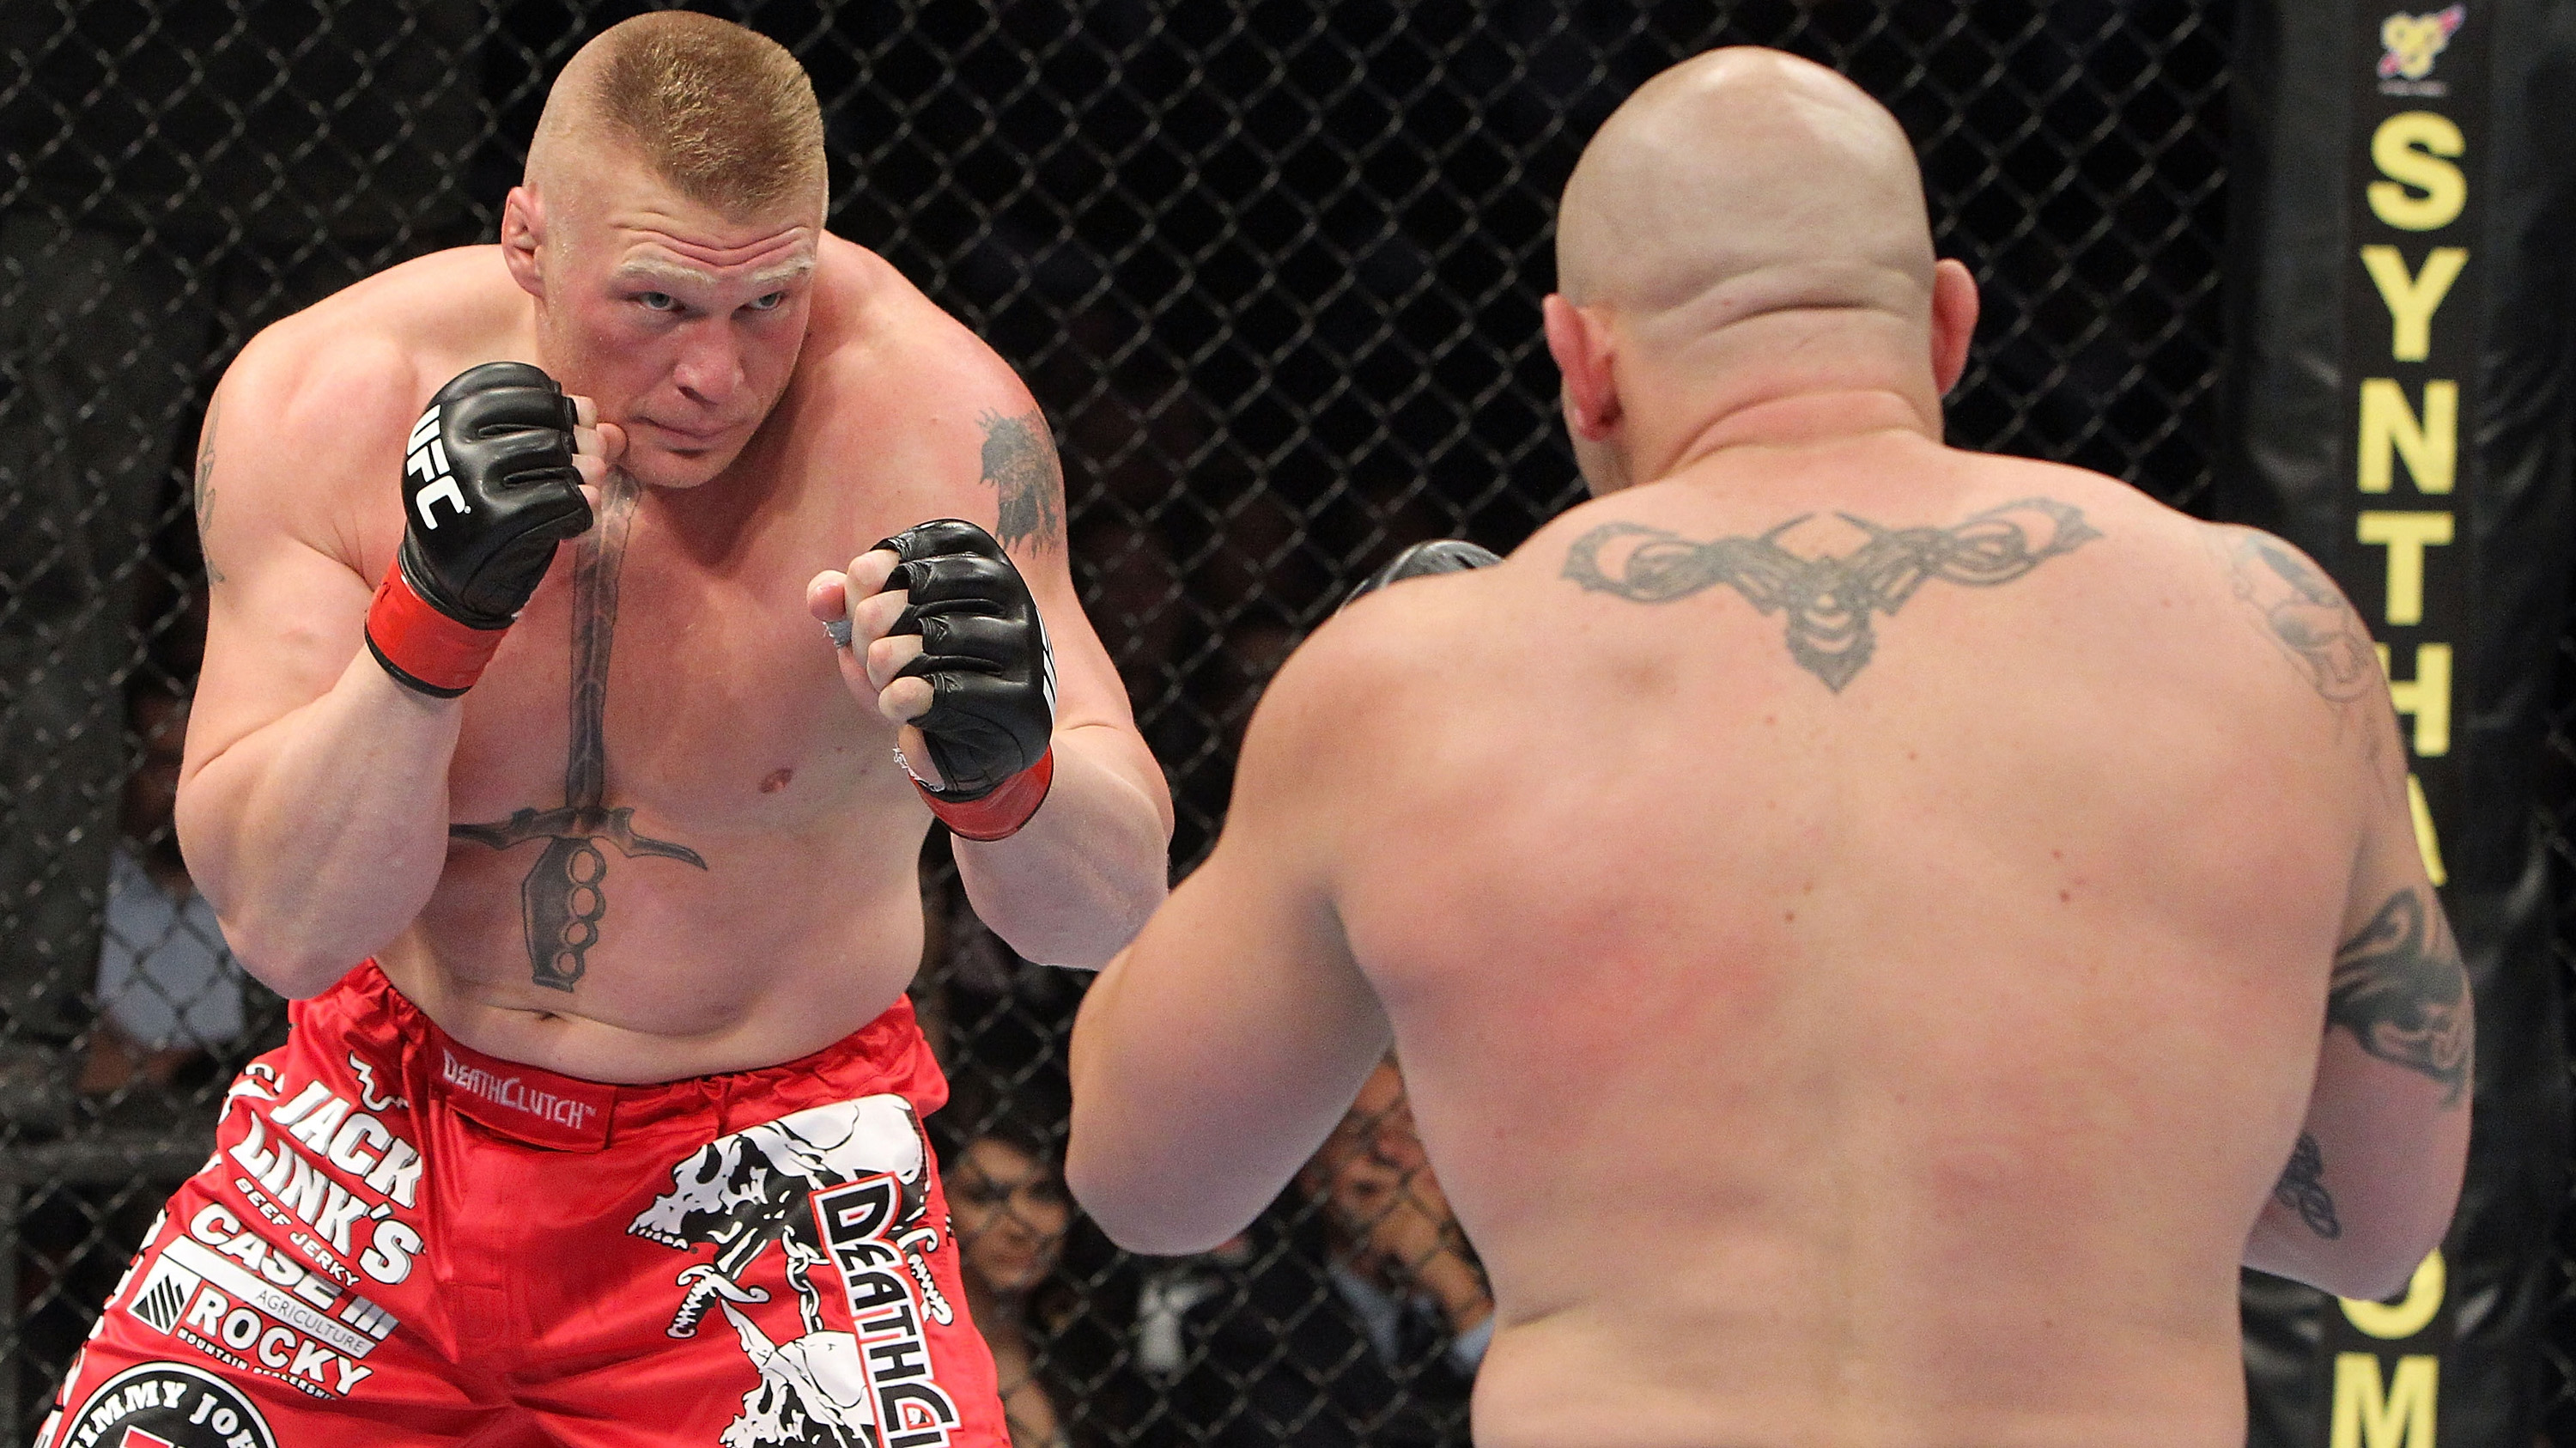 LAS VEGAS - JULY 03: (L-R) Brock Lesnar takes on <a href='../fighter/Shane-Carwin'>Shane Carwin</a> during the UFC Heavyweight Championship Unification bout at the MGM Grand Garden Arena on July 3, 2010 in Las Vegas, Nevada. (Photo by Josh Hedges/Zuffa LLC)